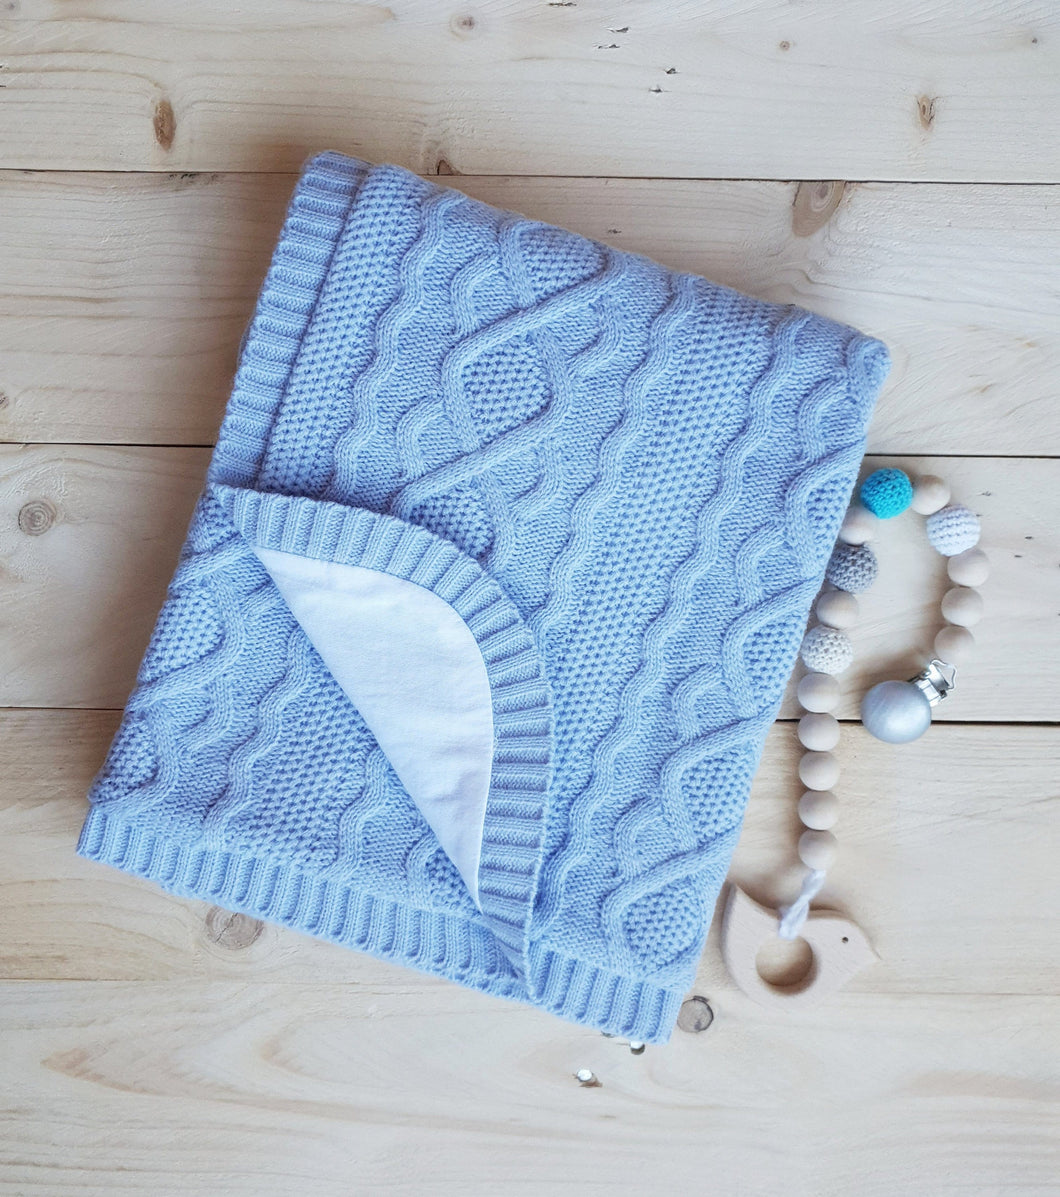 Knitted baby blanket with cotton lining